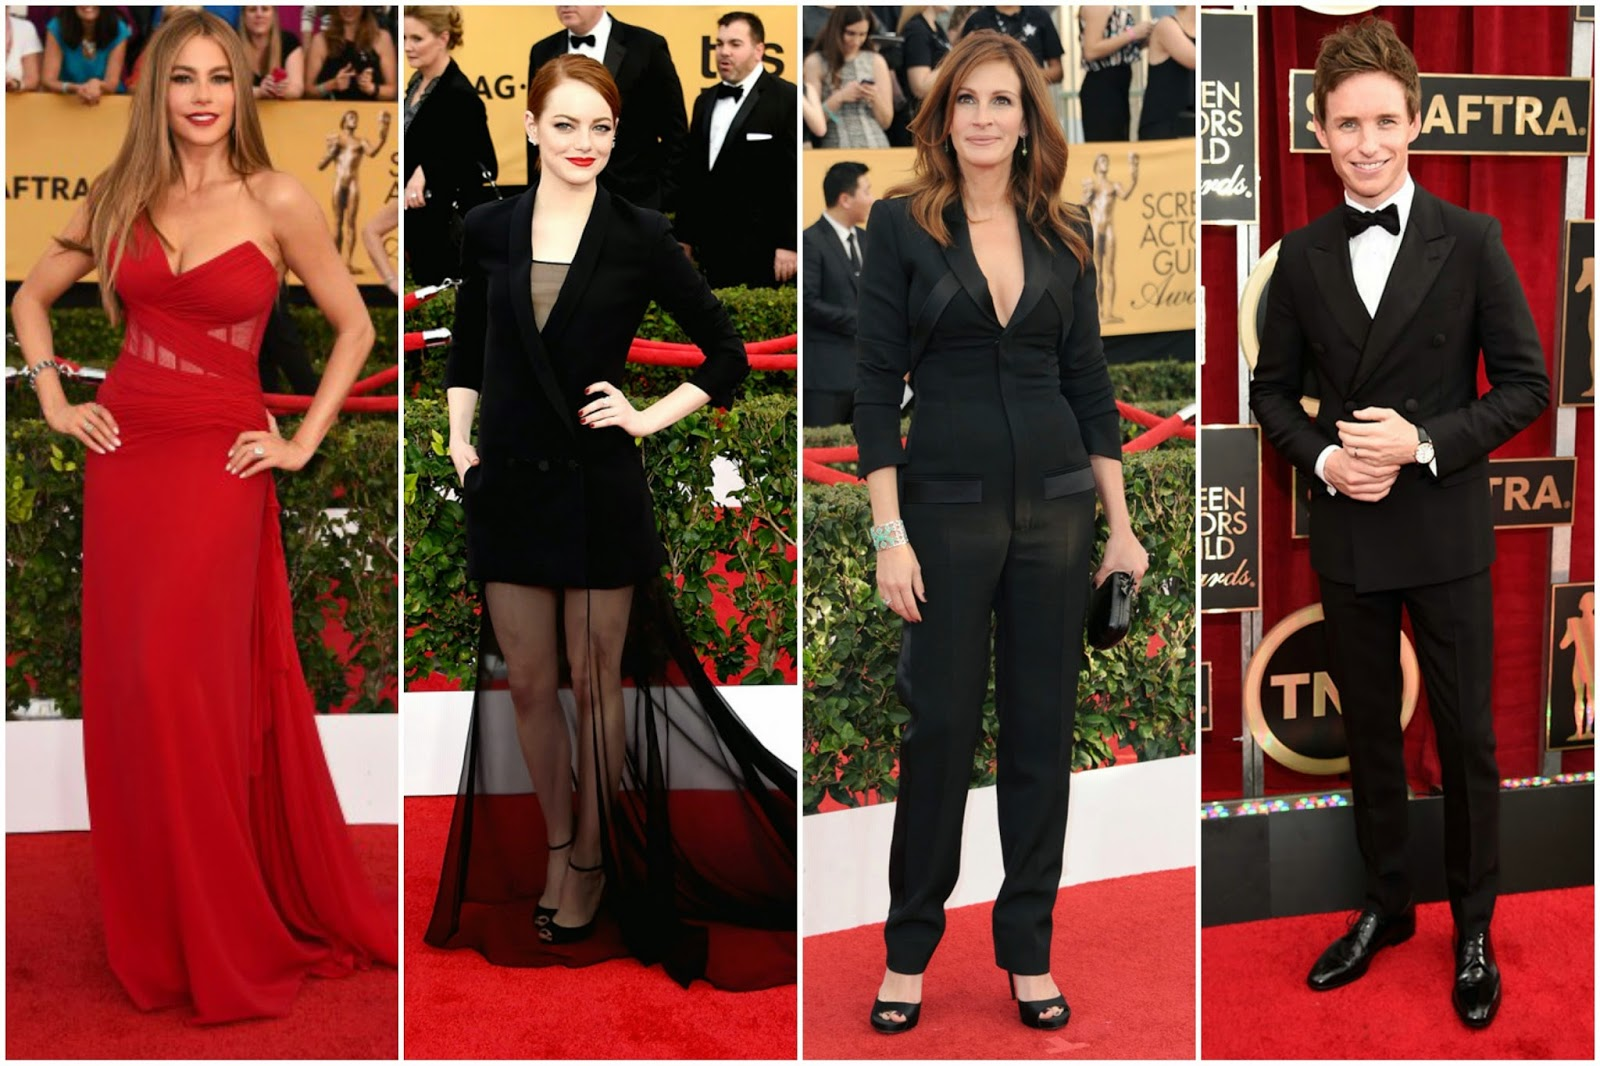 Best Dressed SAG Awards 2015 red carpet sofia vergara emma stone julia roberts eddie redmayne